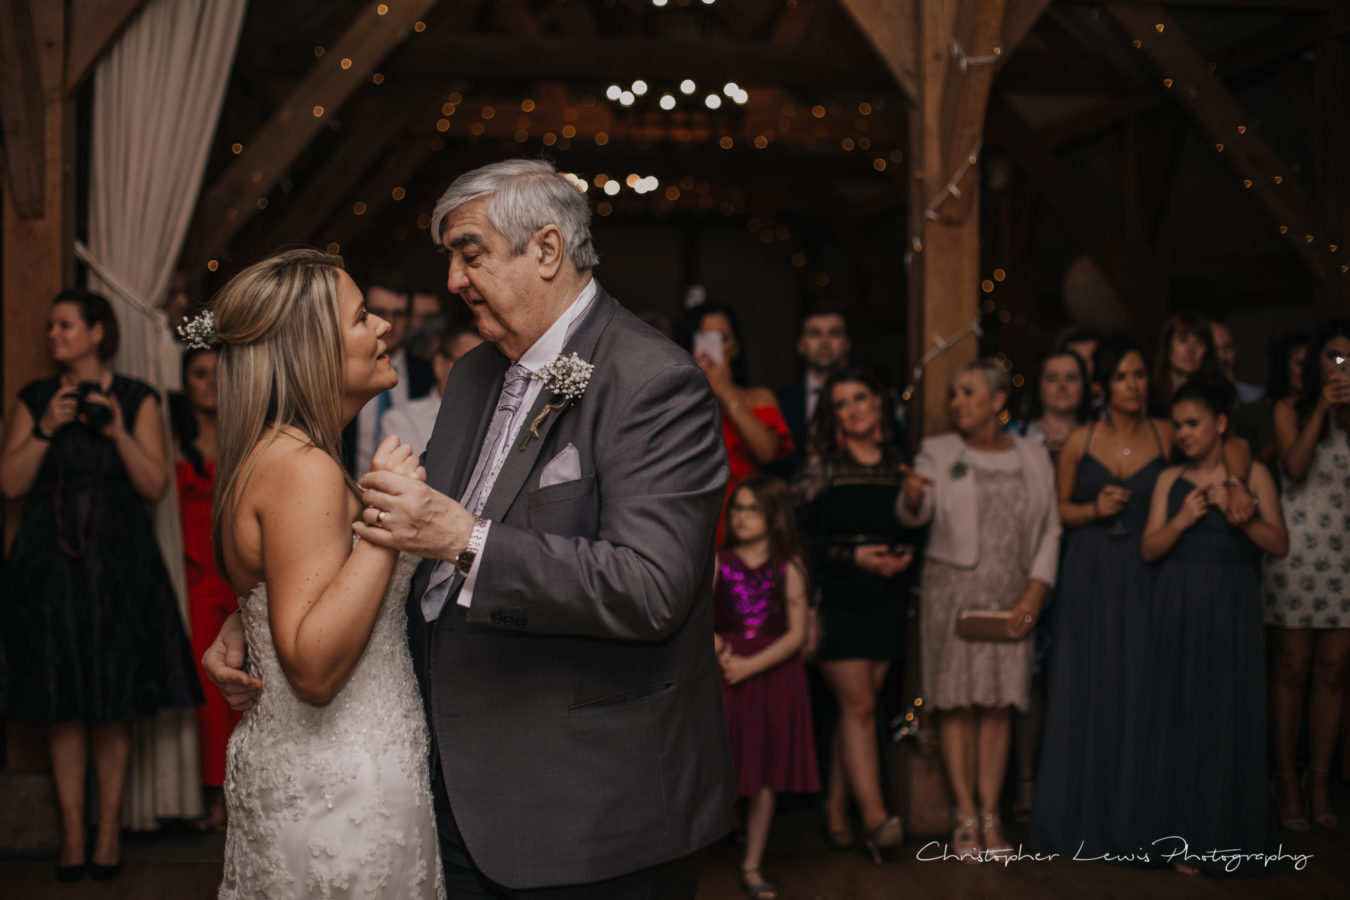 Sandhole-Oak-Barn-Wedding-Christopher-Lewis-Photography- 65